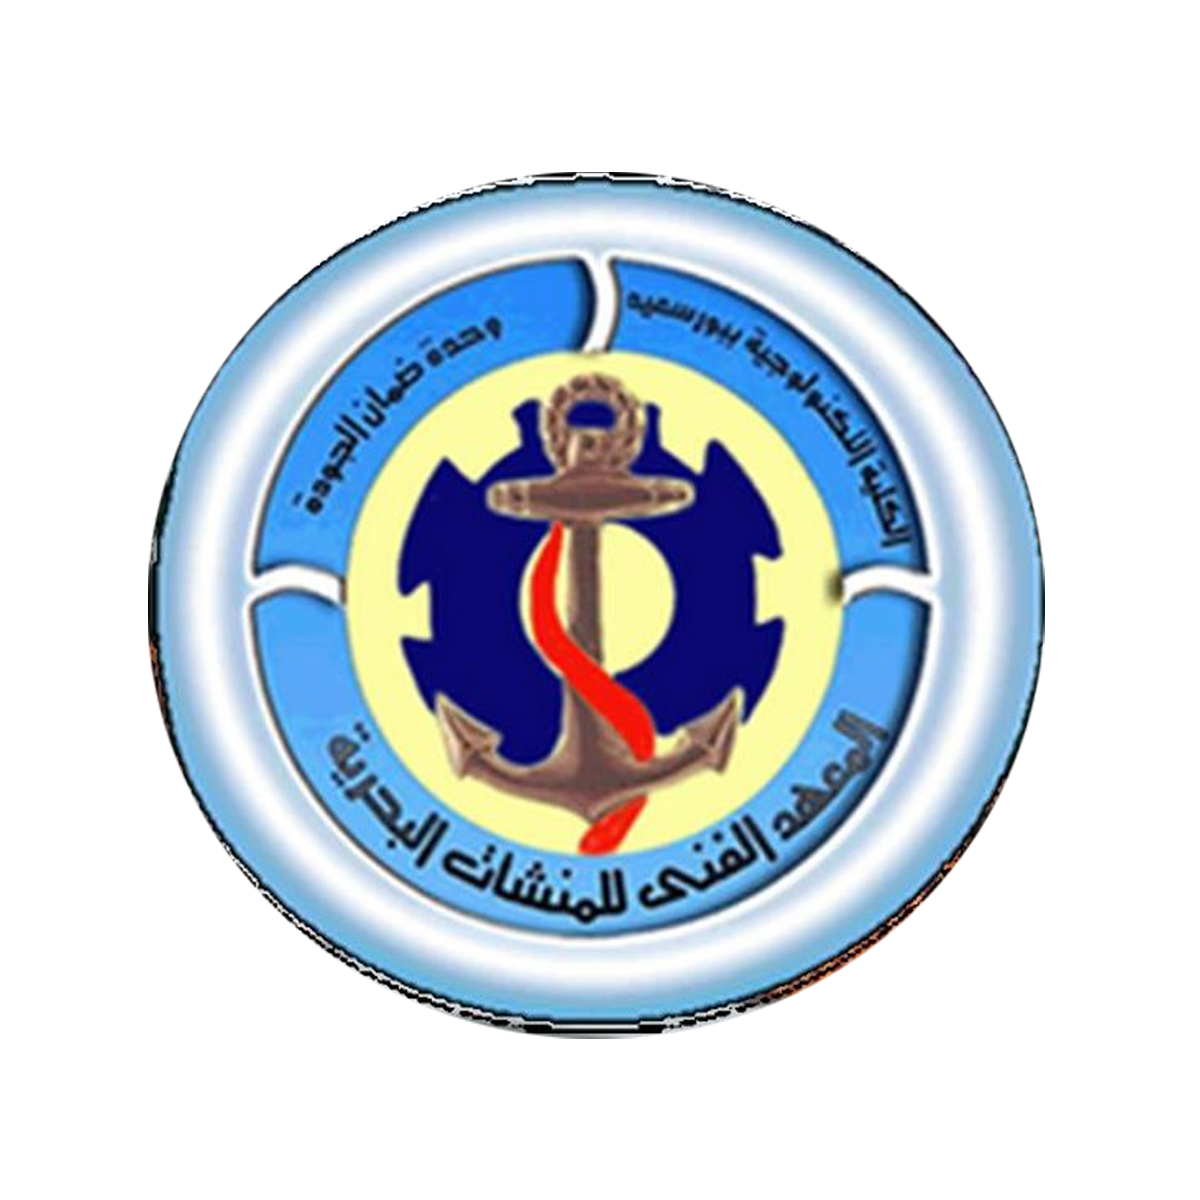 Industrial Technical Institute for Offshore Installations - Port Said